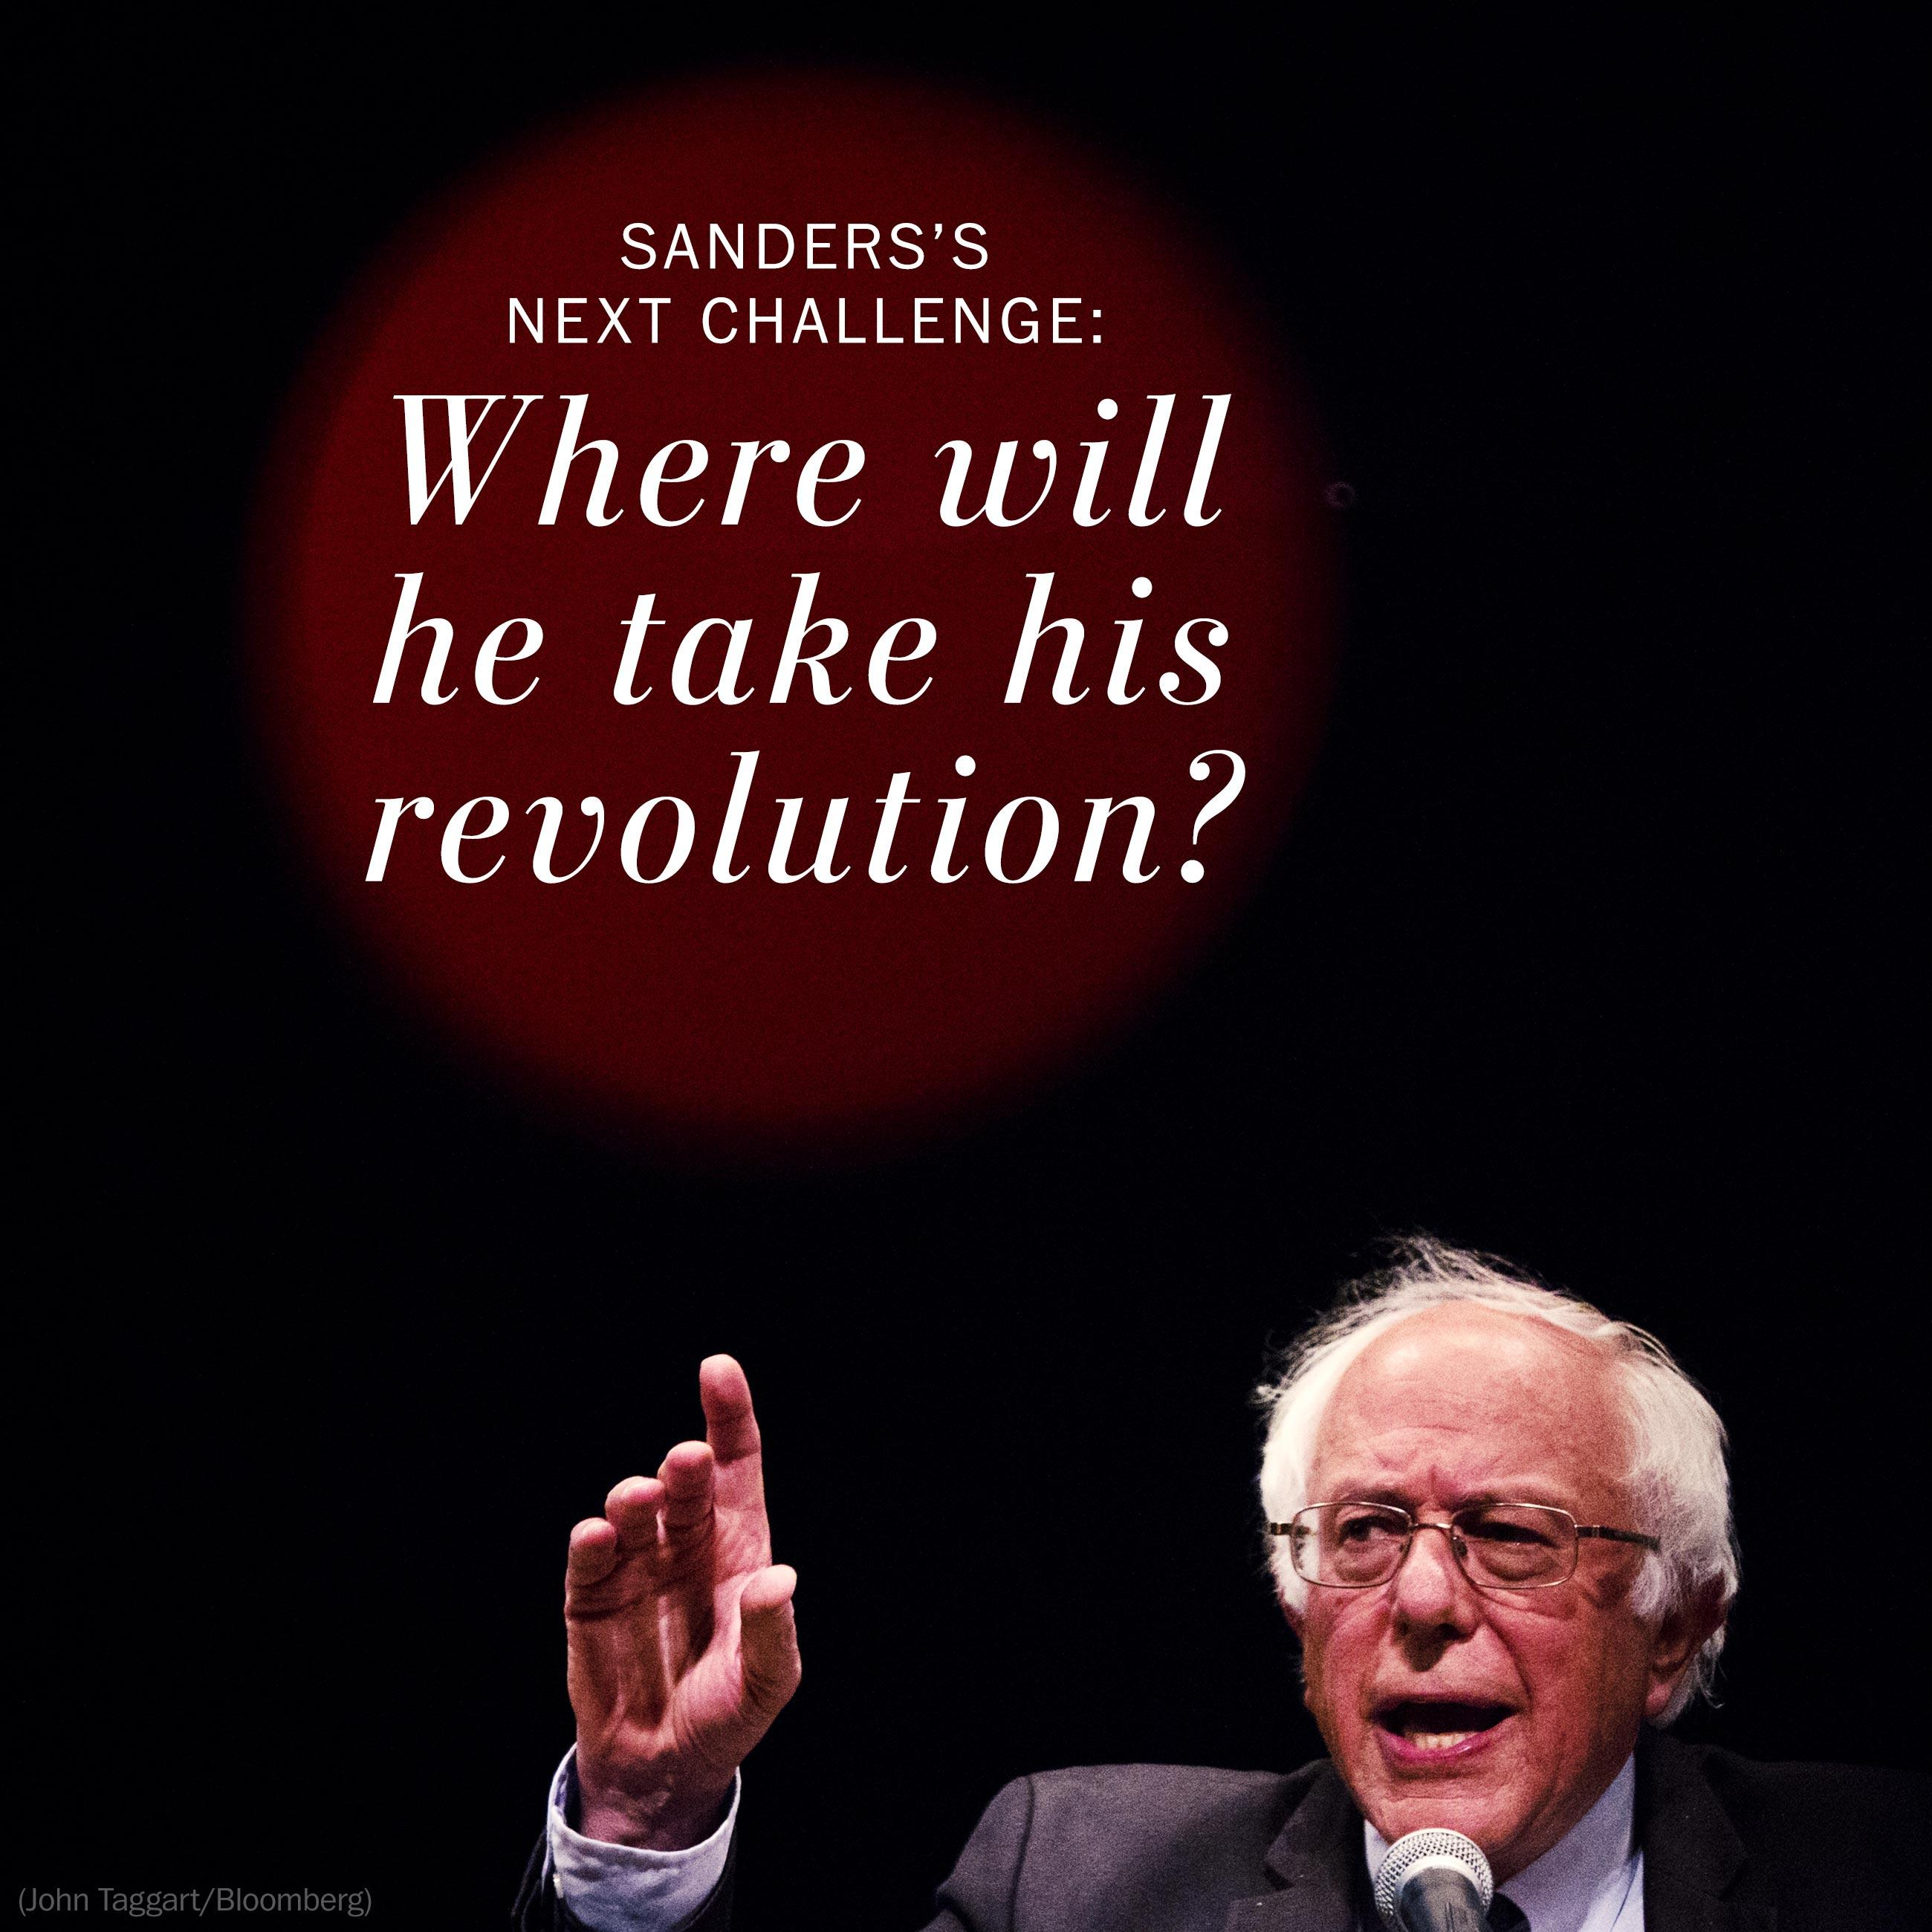 Sanders's next challenge: Where will he take his revolution?